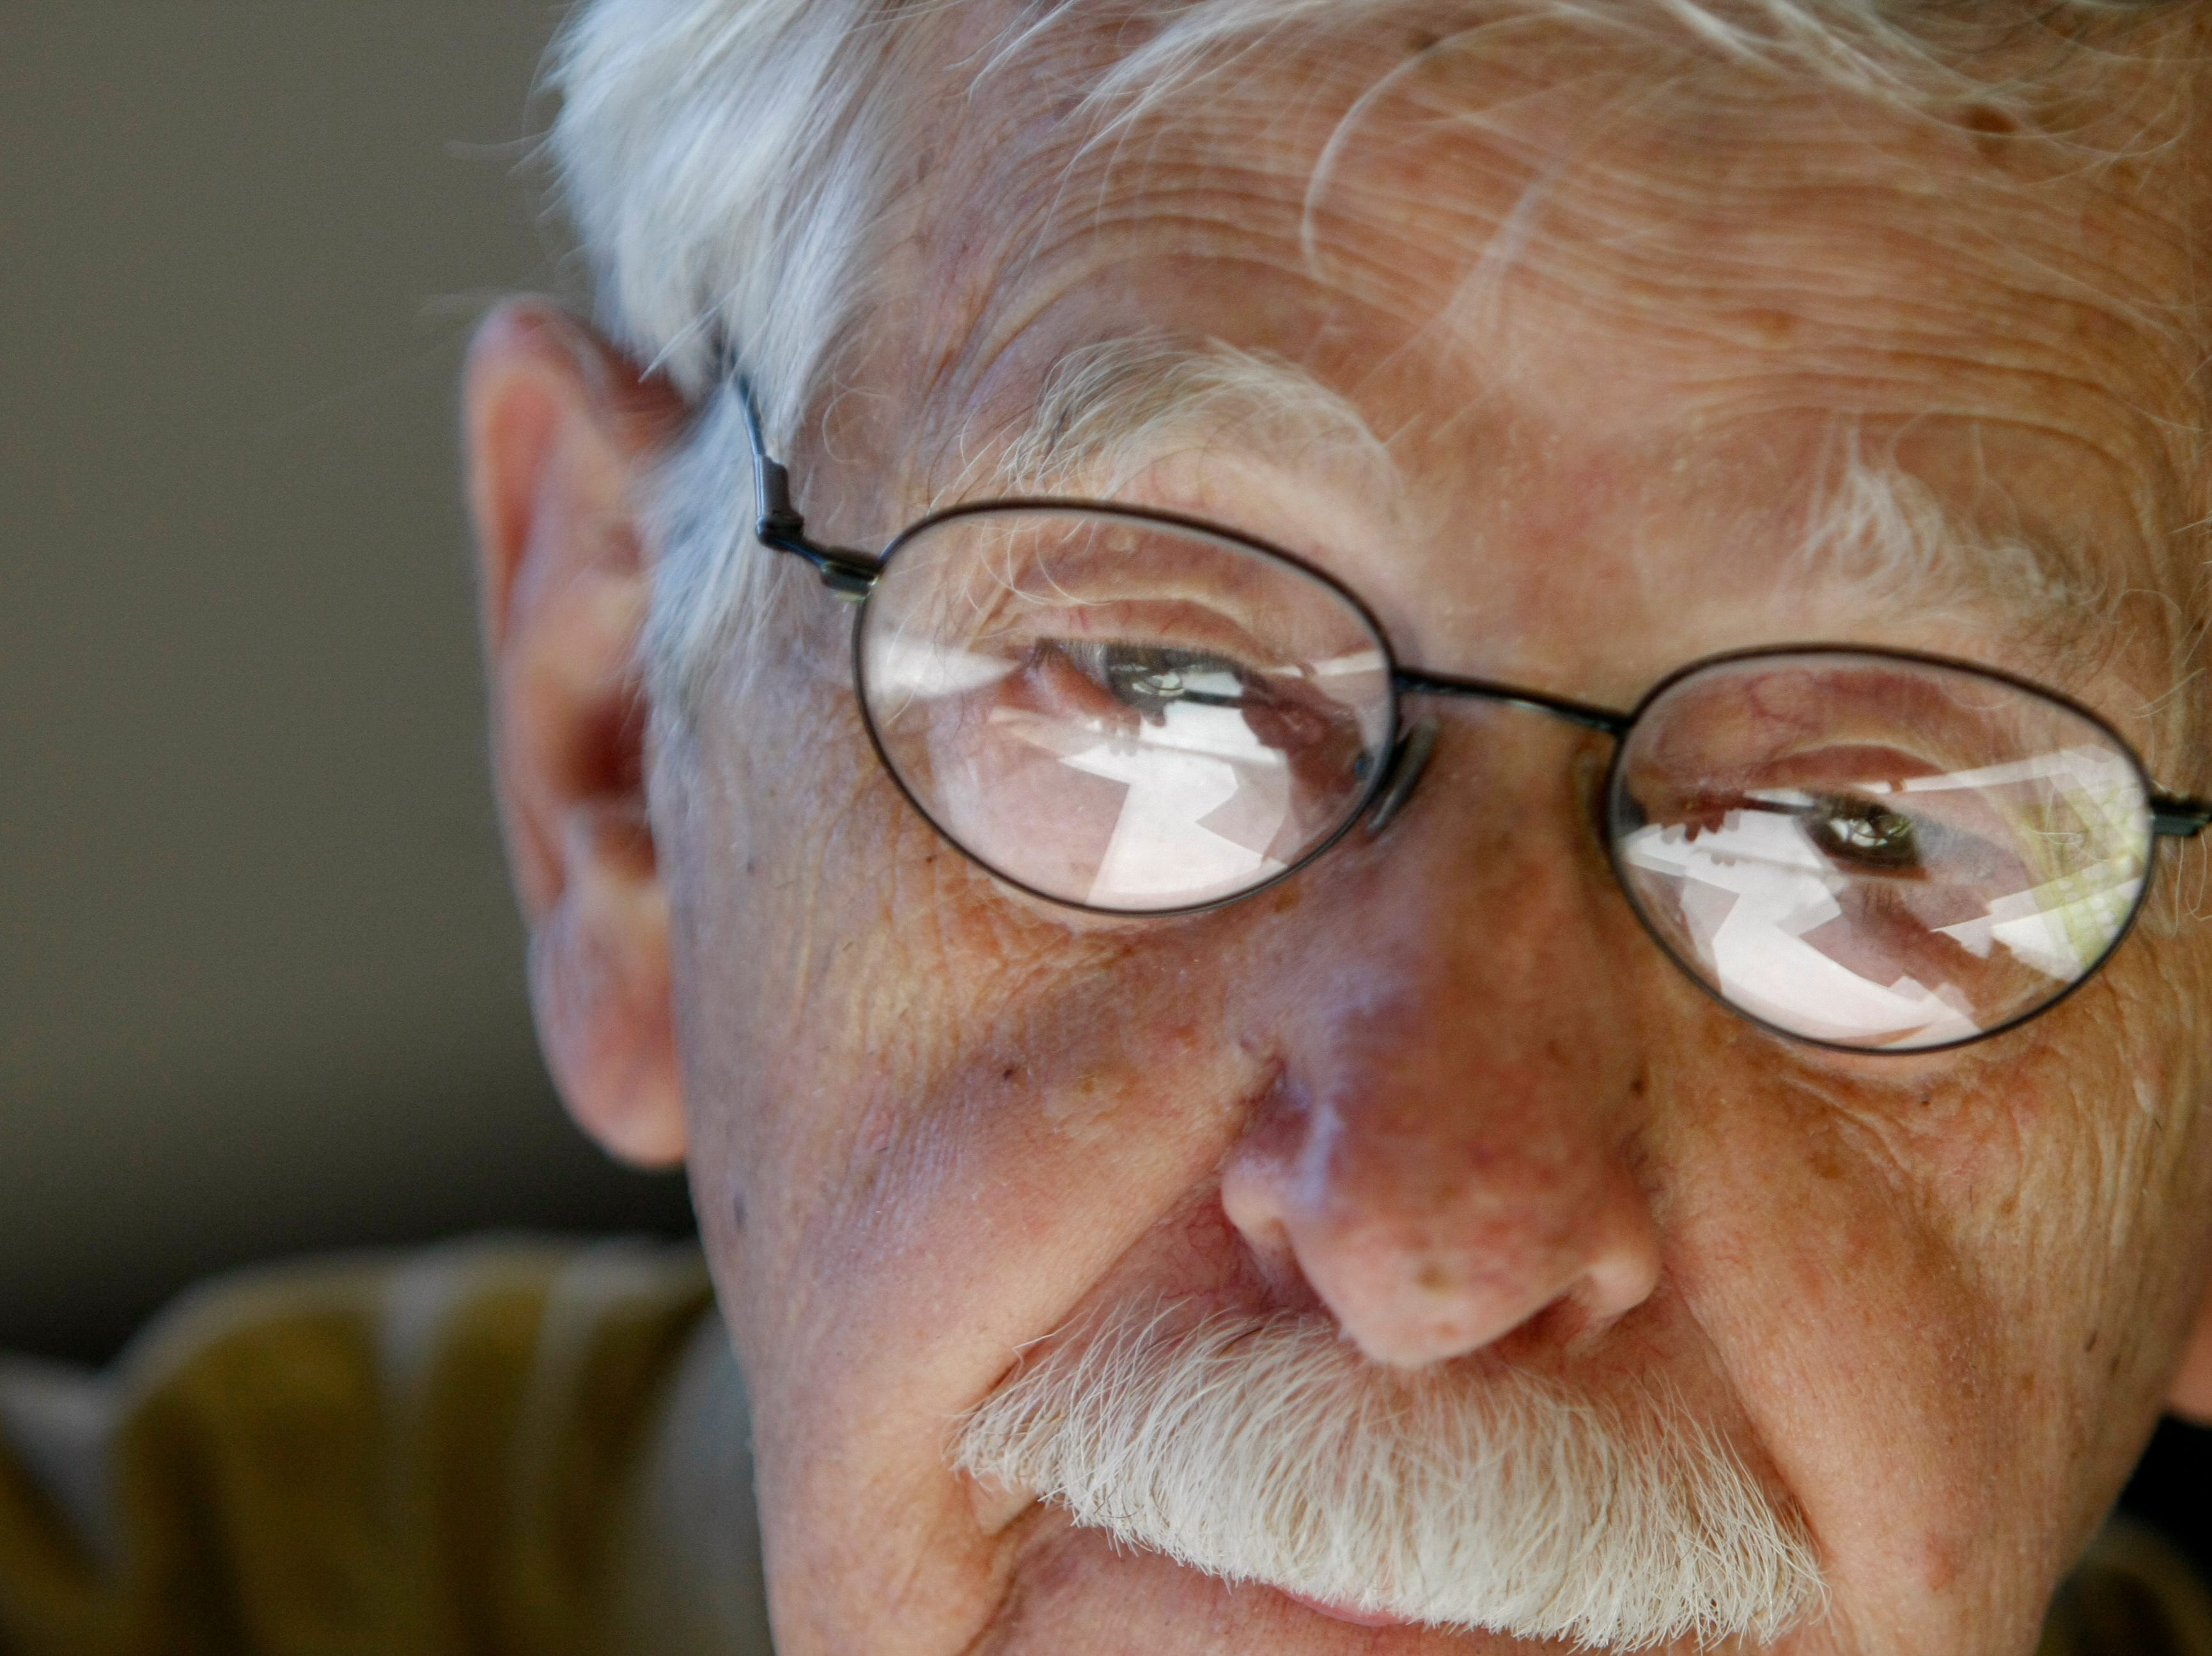 Charlie Daniel, editorial cartoonist for the News Sentinel, works on a drawing at his desk in July 2008. Daniel retired Feb. 1, 2019, after 60 years of cartooning in Knoxville, starting with his first job at The Knoxville Journal. (photo taken Tuesday, July 1, 2008)